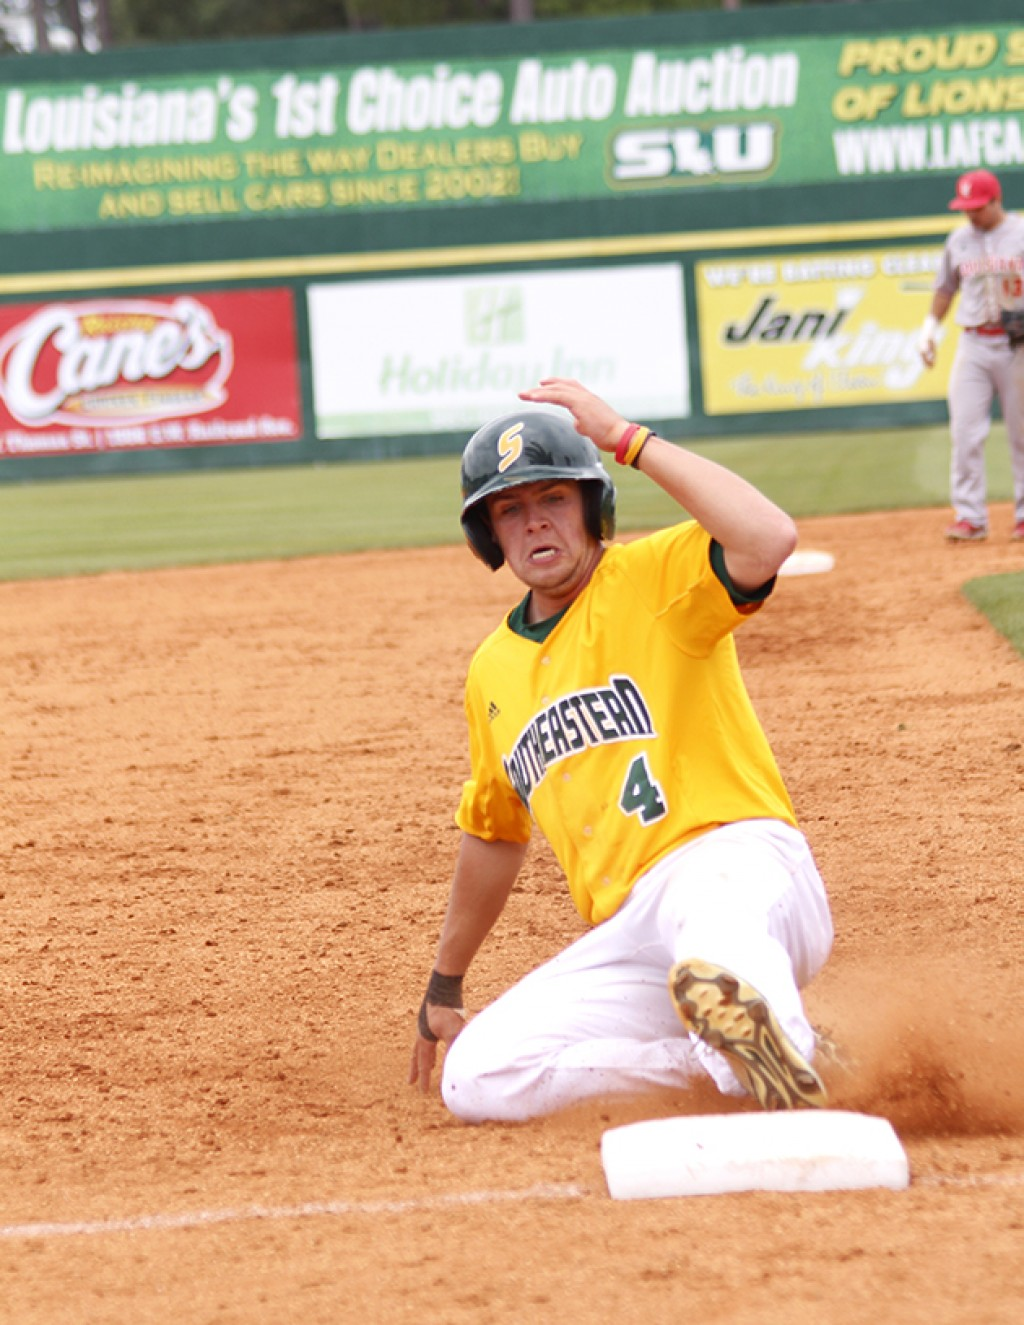 Sophomore left fielder Drew Avans slides into the third base. He finished the game with two hits and three RBI's.